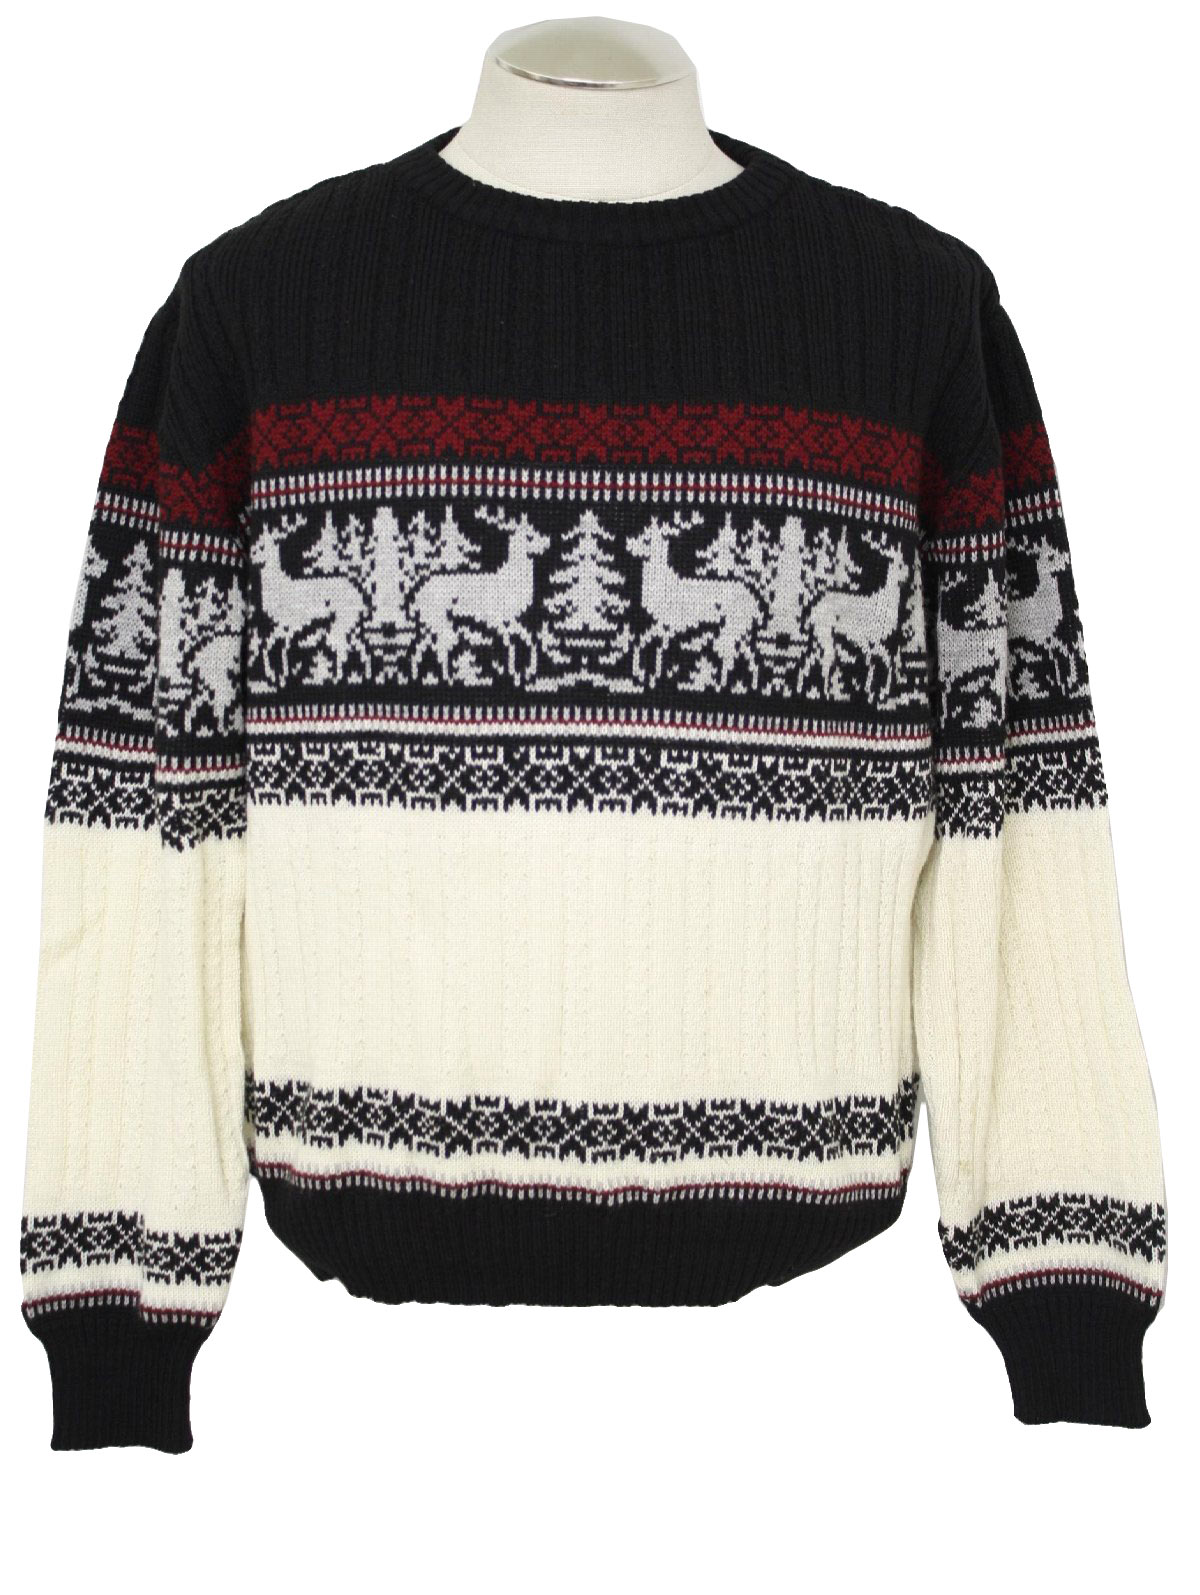 1980's Mens Christmas Style Ski Sweater: 80s vintage -Hardwood and ...